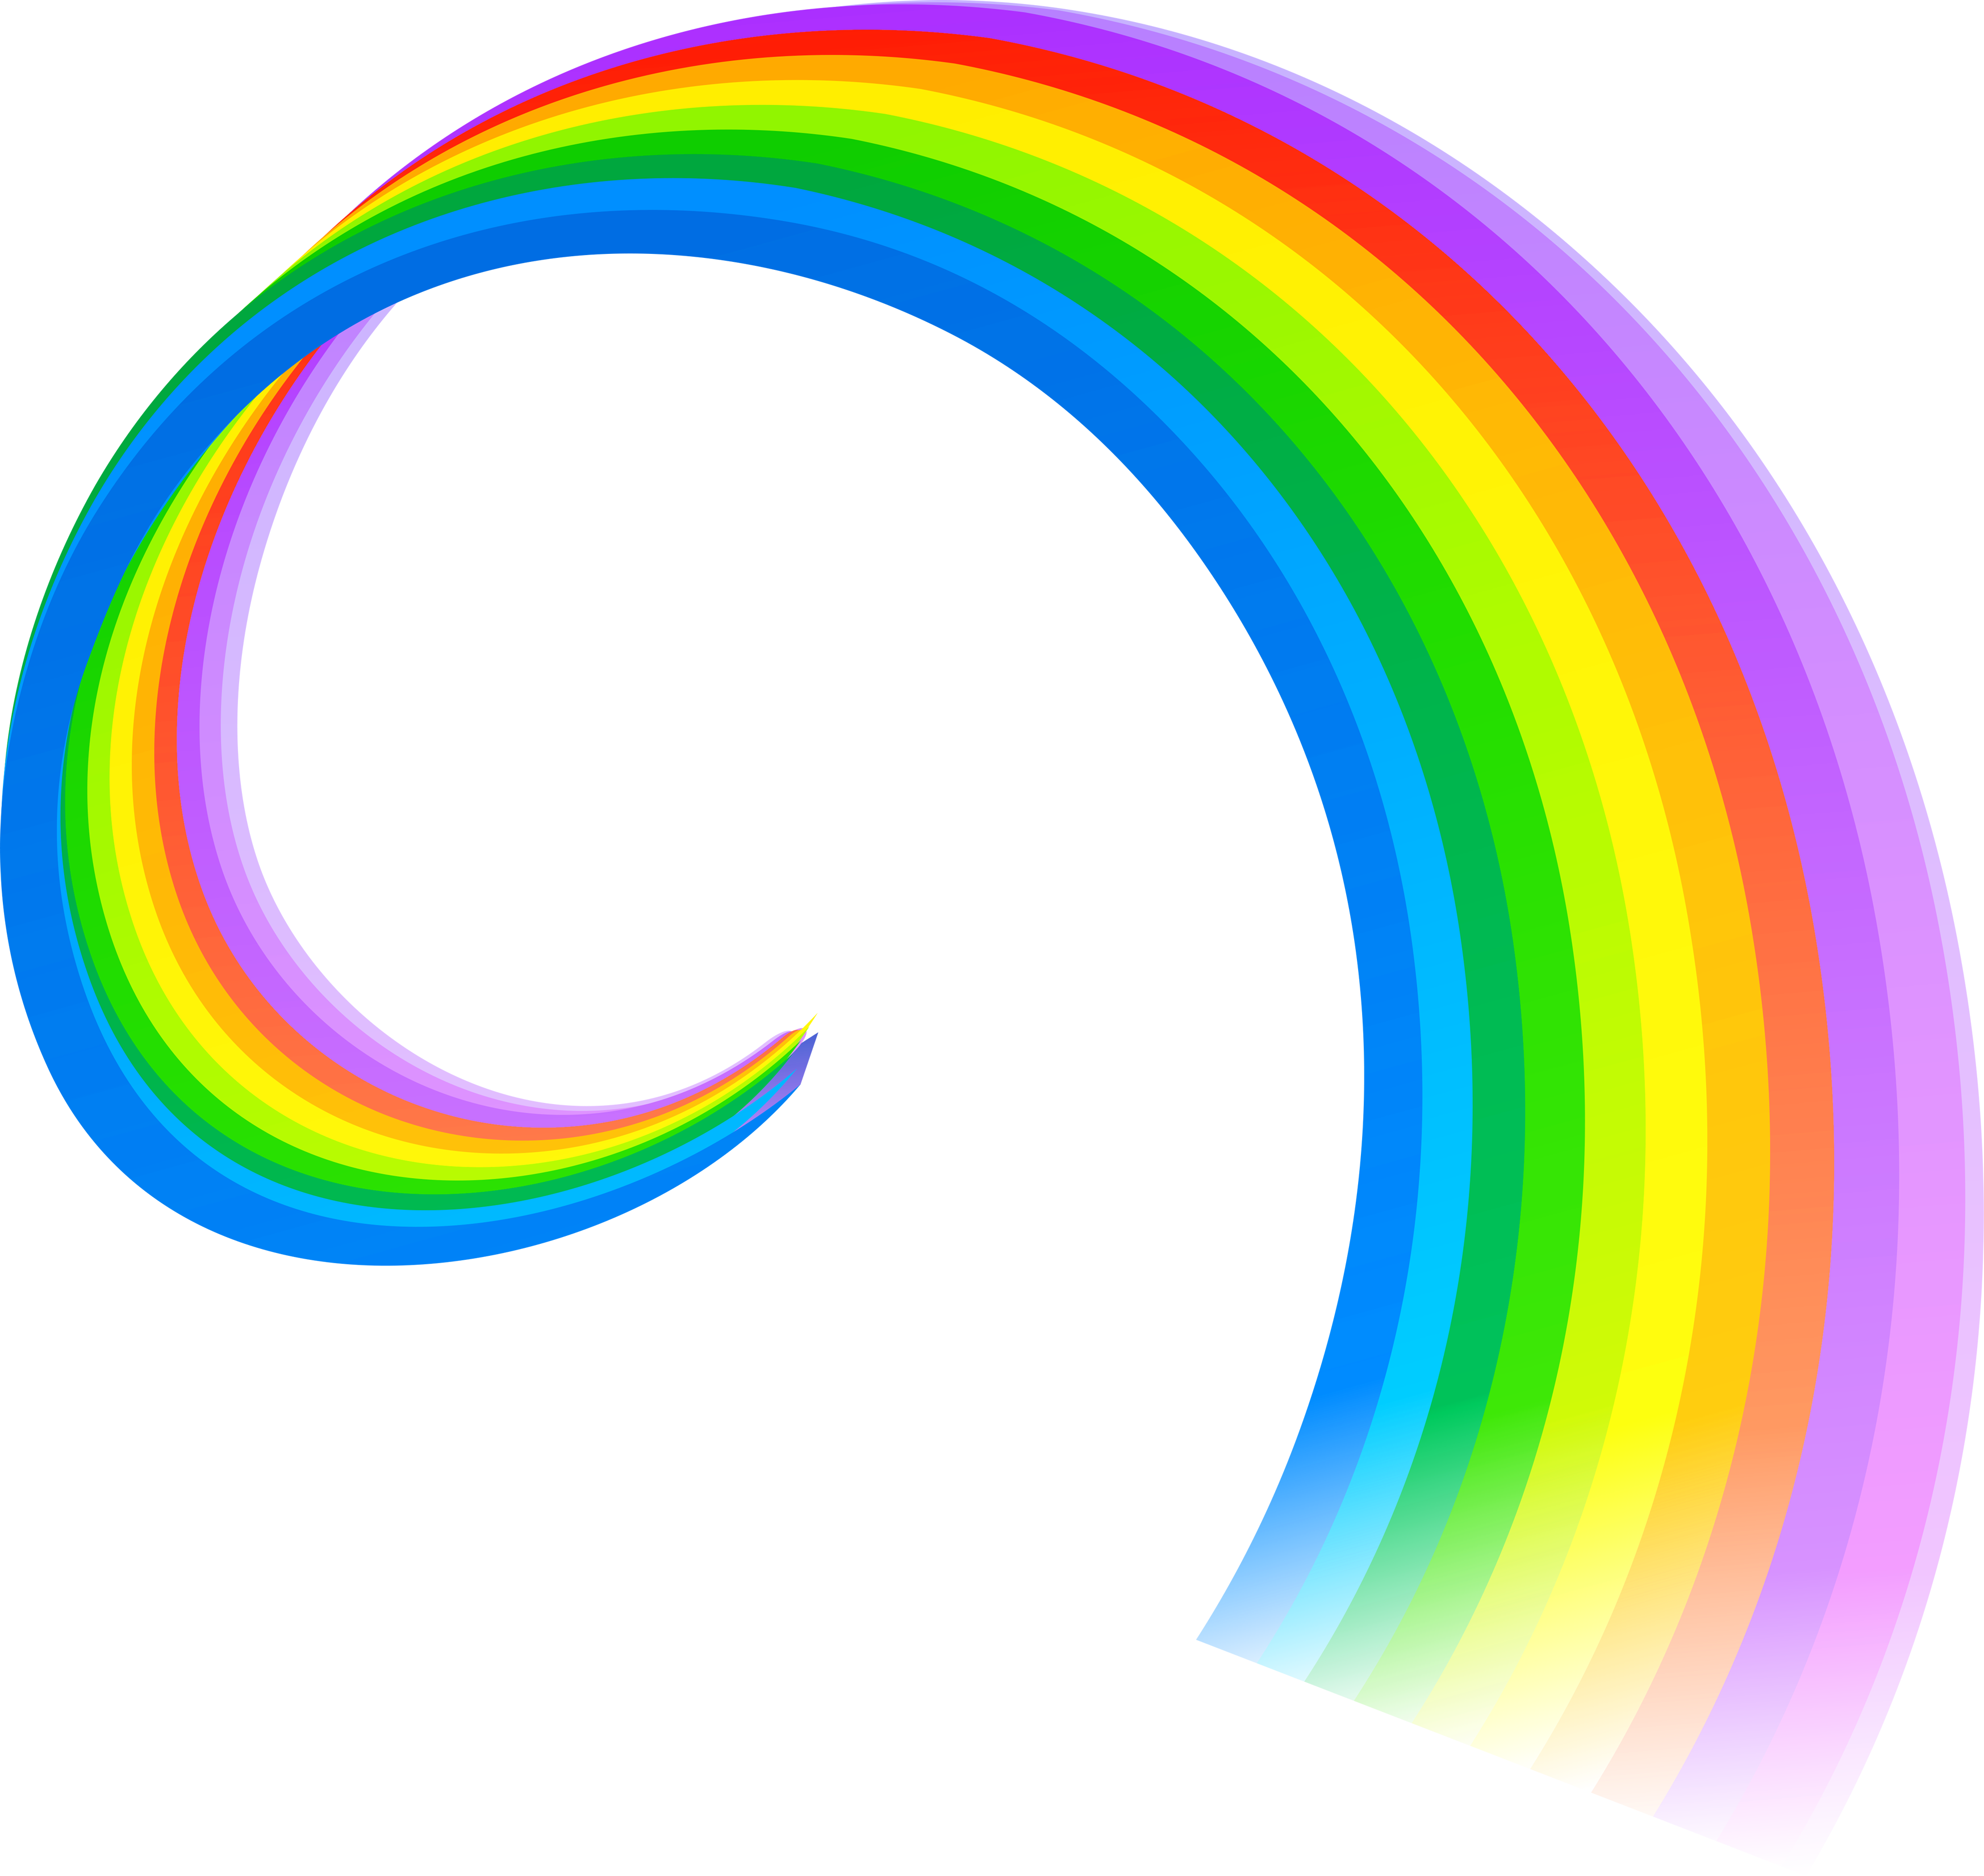 Hanger clipart rainbow. Clip arts for free